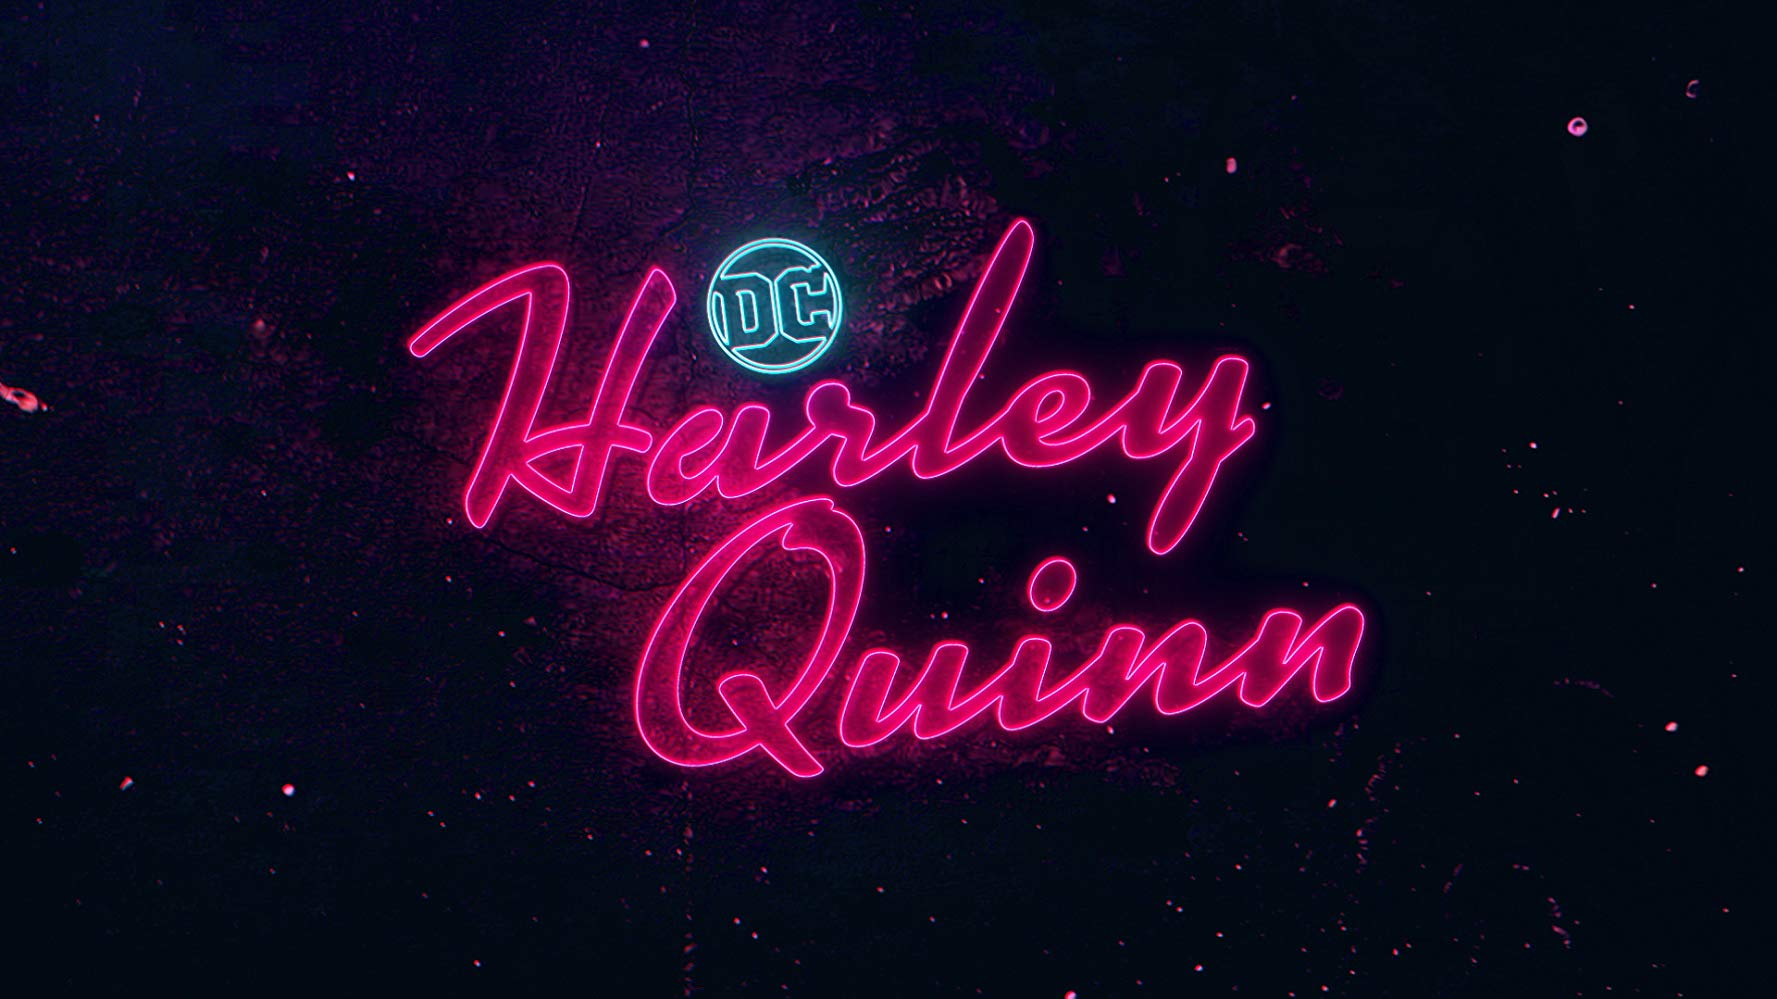 Harley Quinn (TV Series) Episode: Bensonhurst